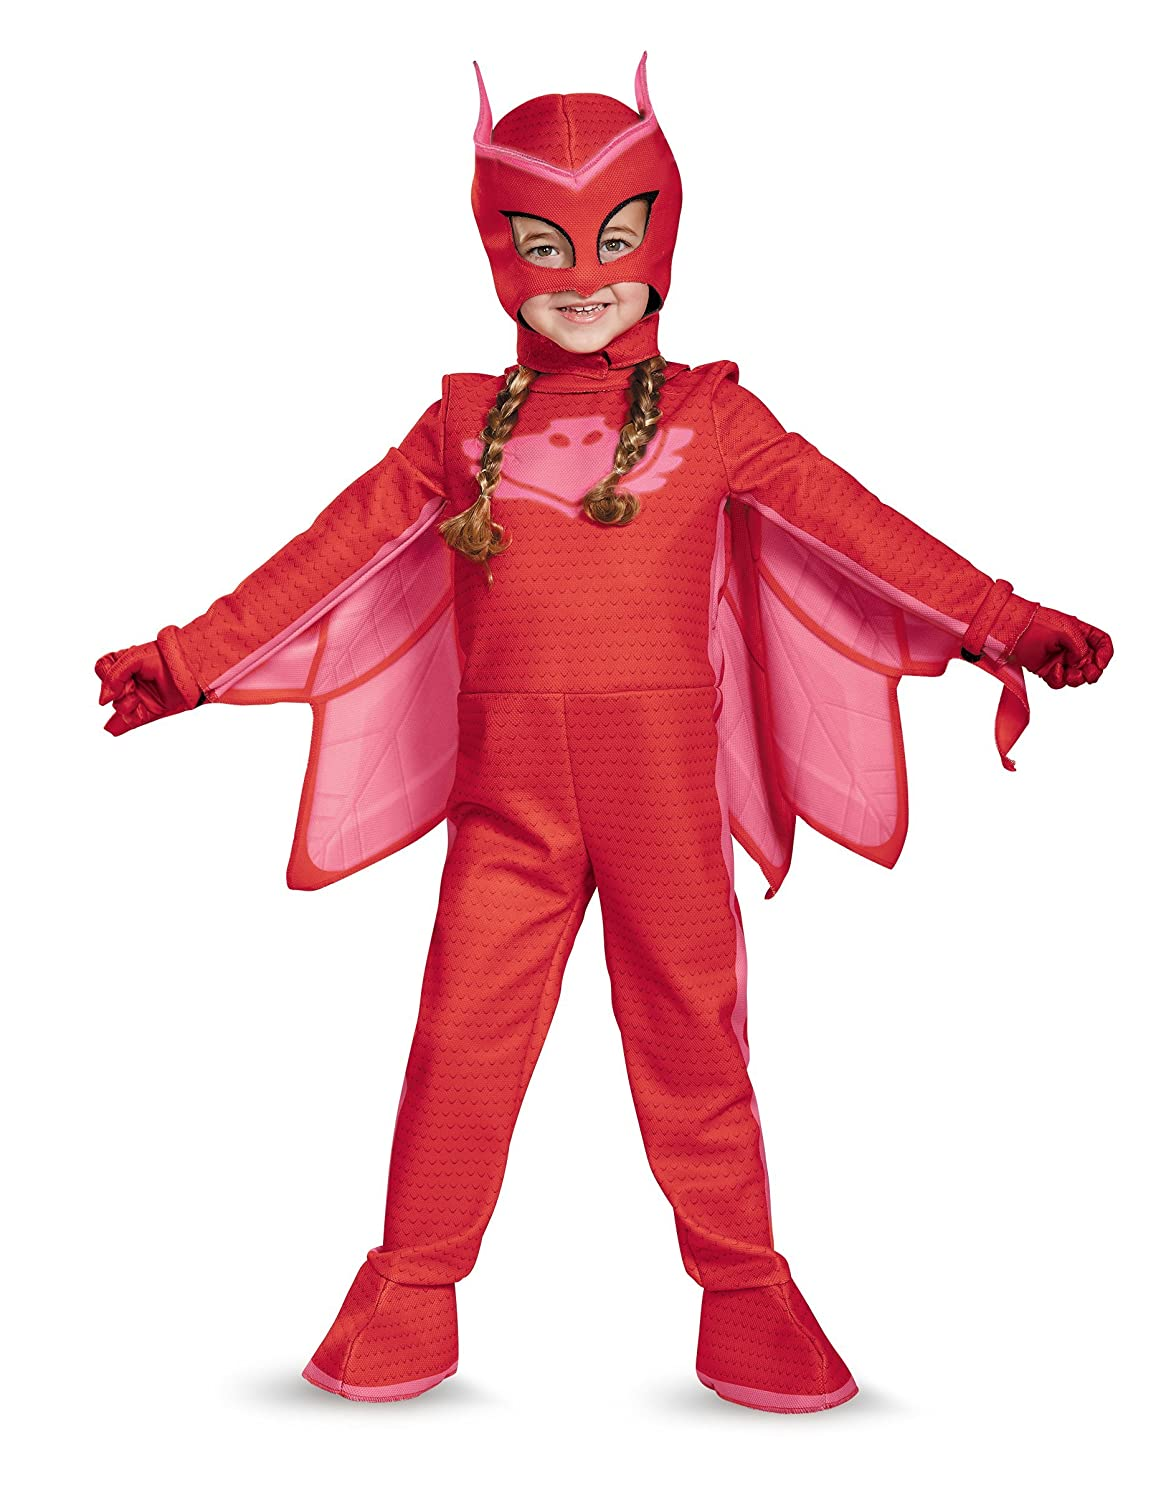 Owlette Deluxe Toddler PJ Masks Jumpsuit with Attached Boot Covers, Medium/3T-4T 17171M